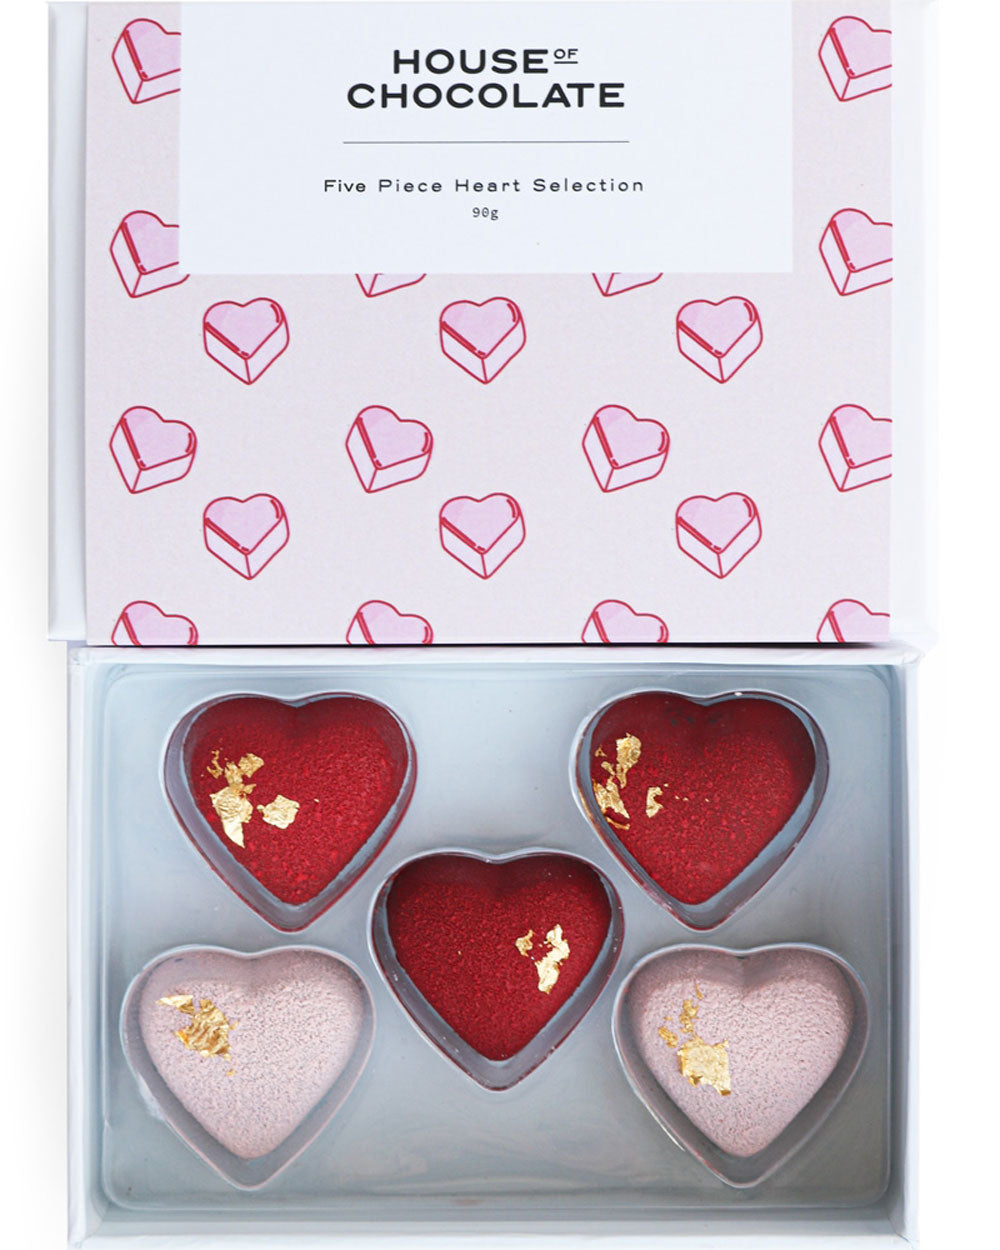 5 Pc Pink Heart Bonbon Box / Valentine's Day / House of Chocolate